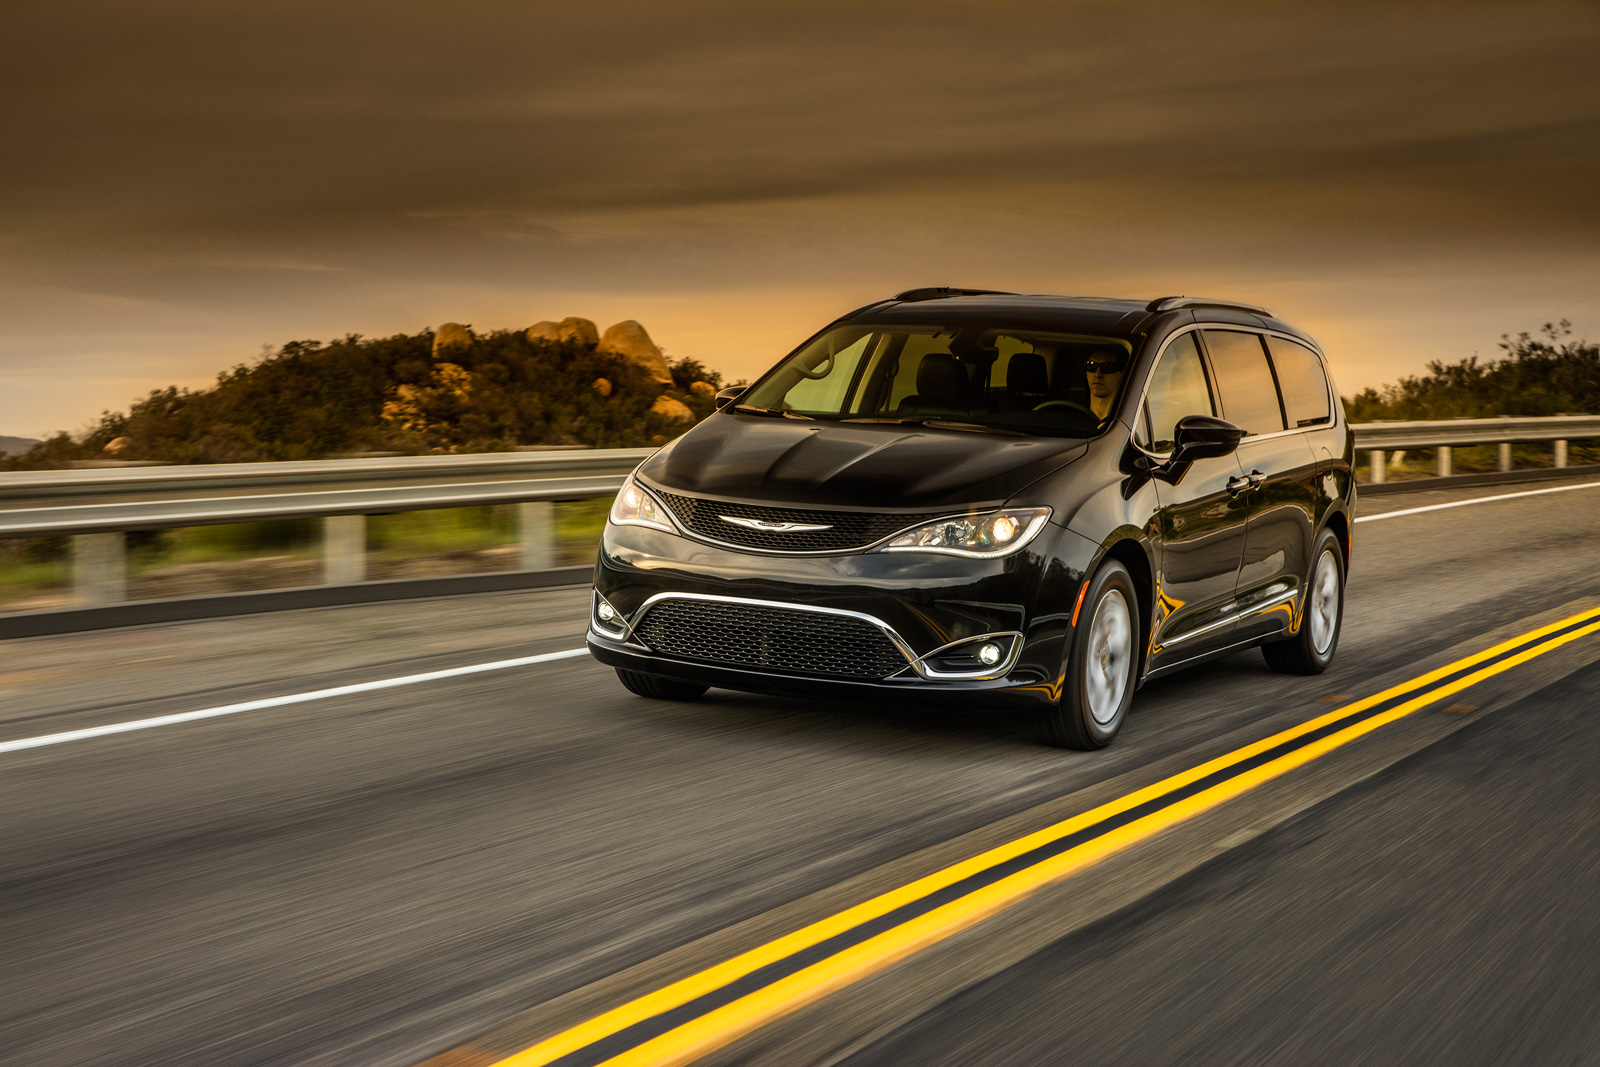 2017 Chrysler Pacifica Lineup Adds New Touring Plus Model